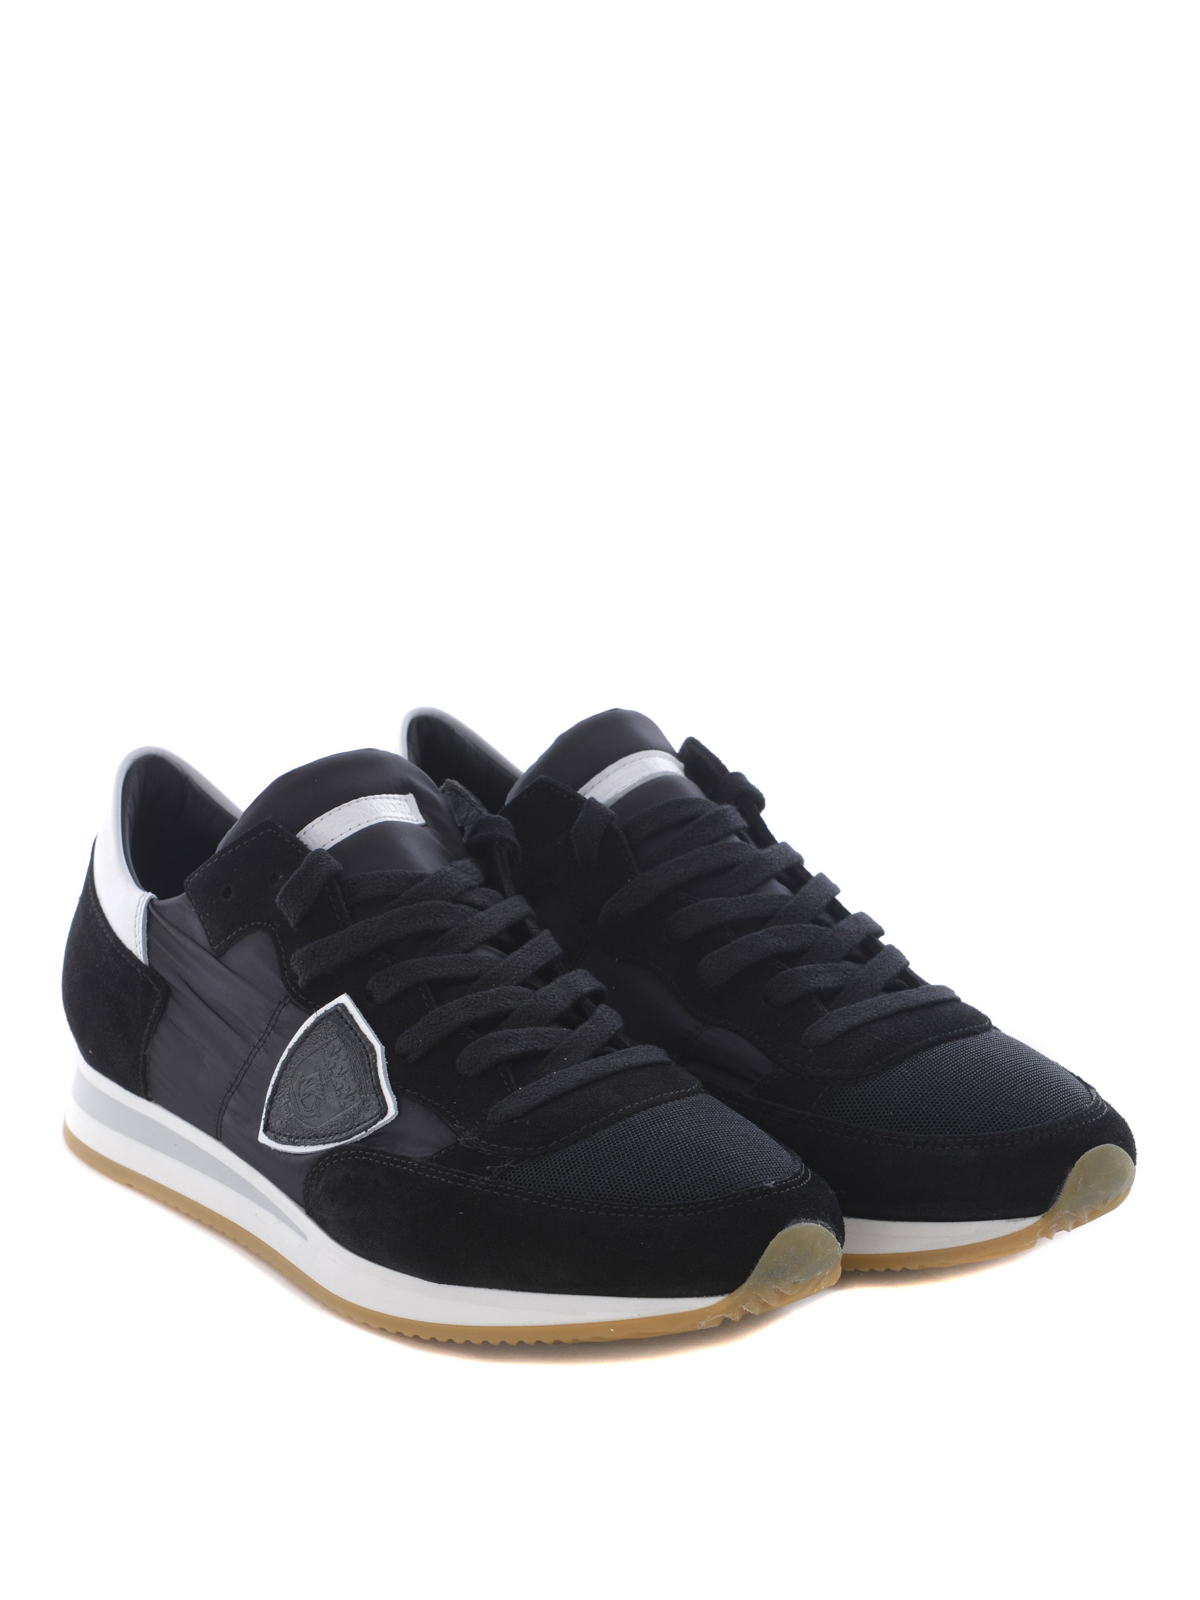 Philippe Model Suede Low-Top Sneakers geniue stockist cheap sale largest supplier free shipping cost very cheap for sale Kz16wOslop